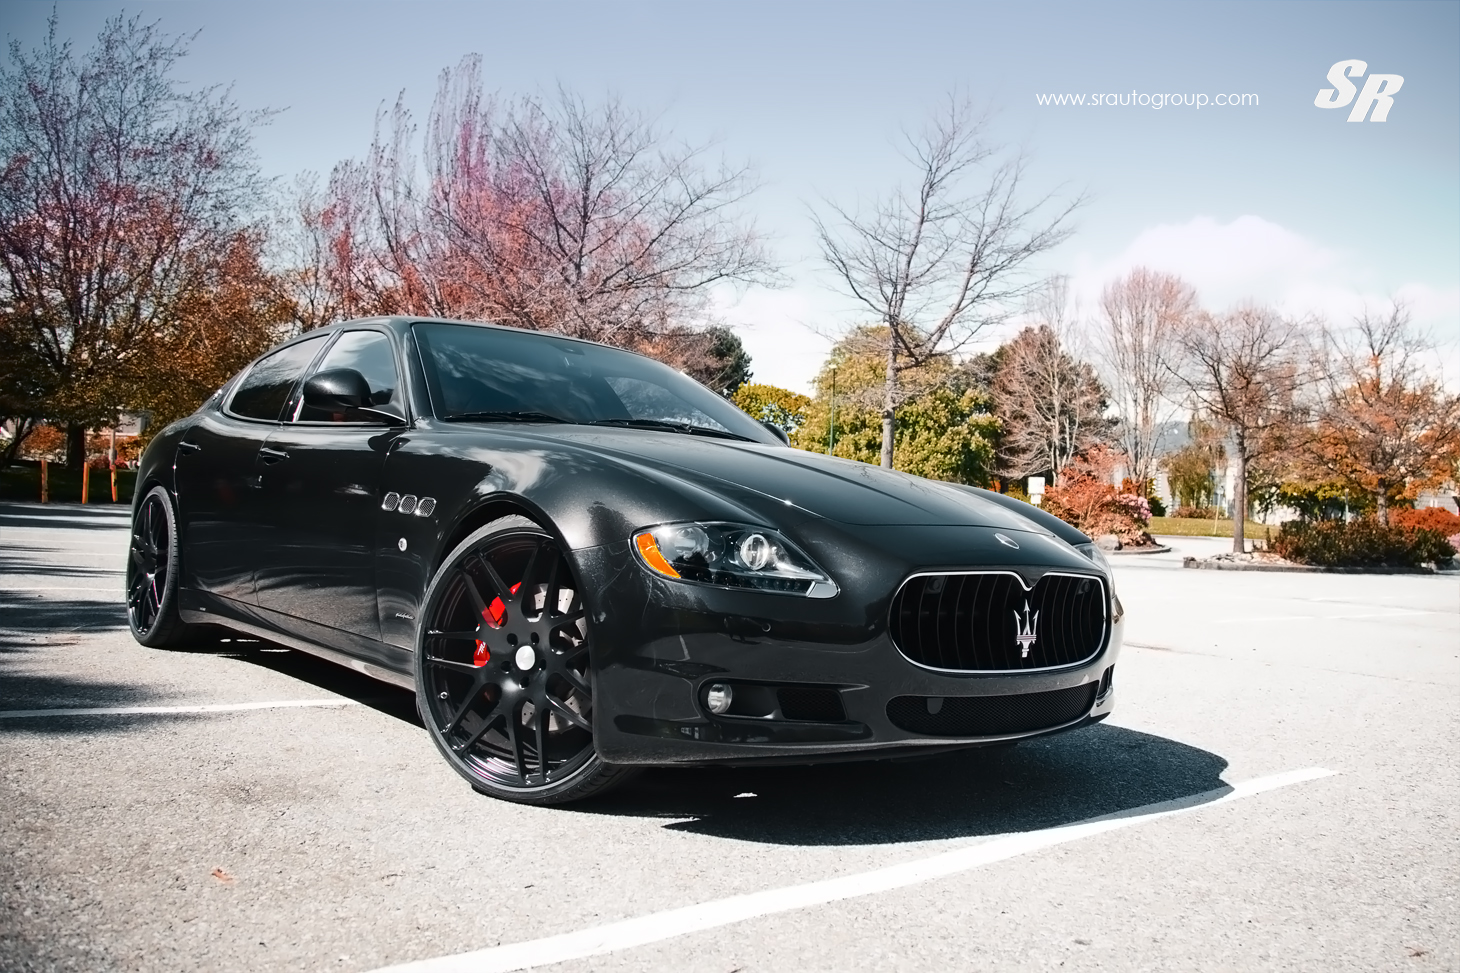 maserati quattroporte tuning 5 tuning. Black Bedroom Furniture Sets. Home Design Ideas